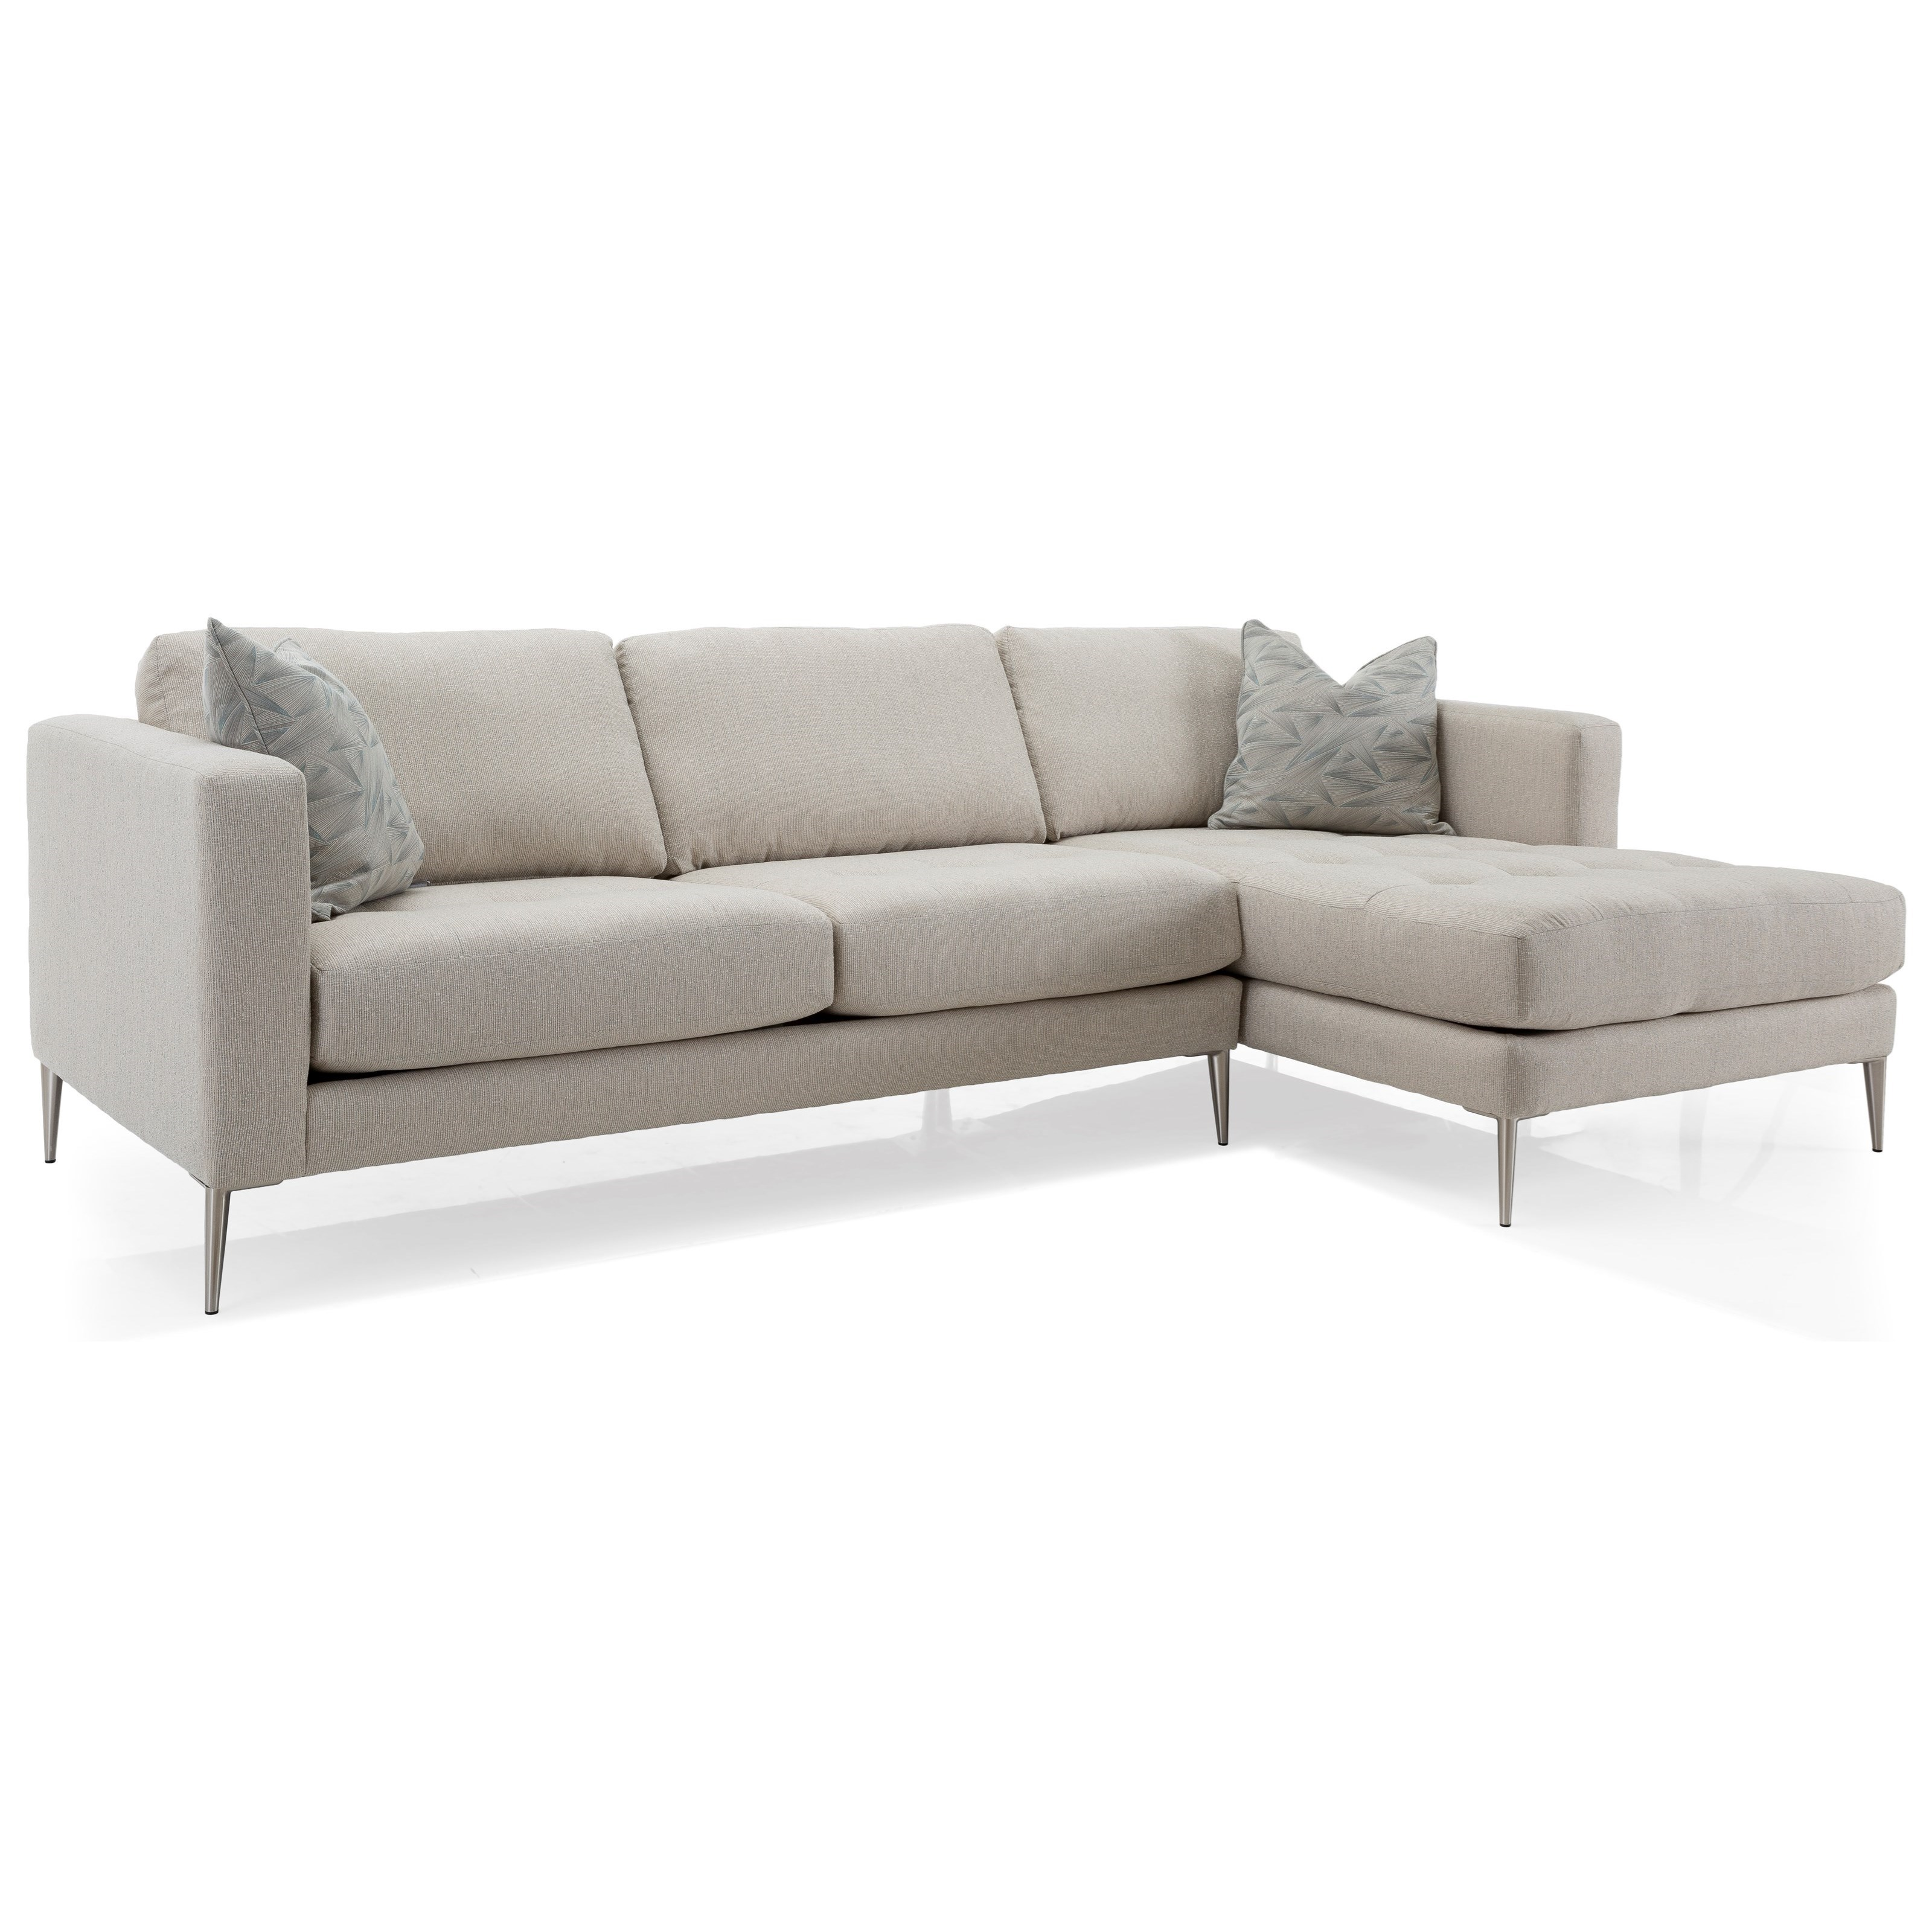 3795 Chaise Sofa by Decor-Rest at Upper Room Home Furnishings